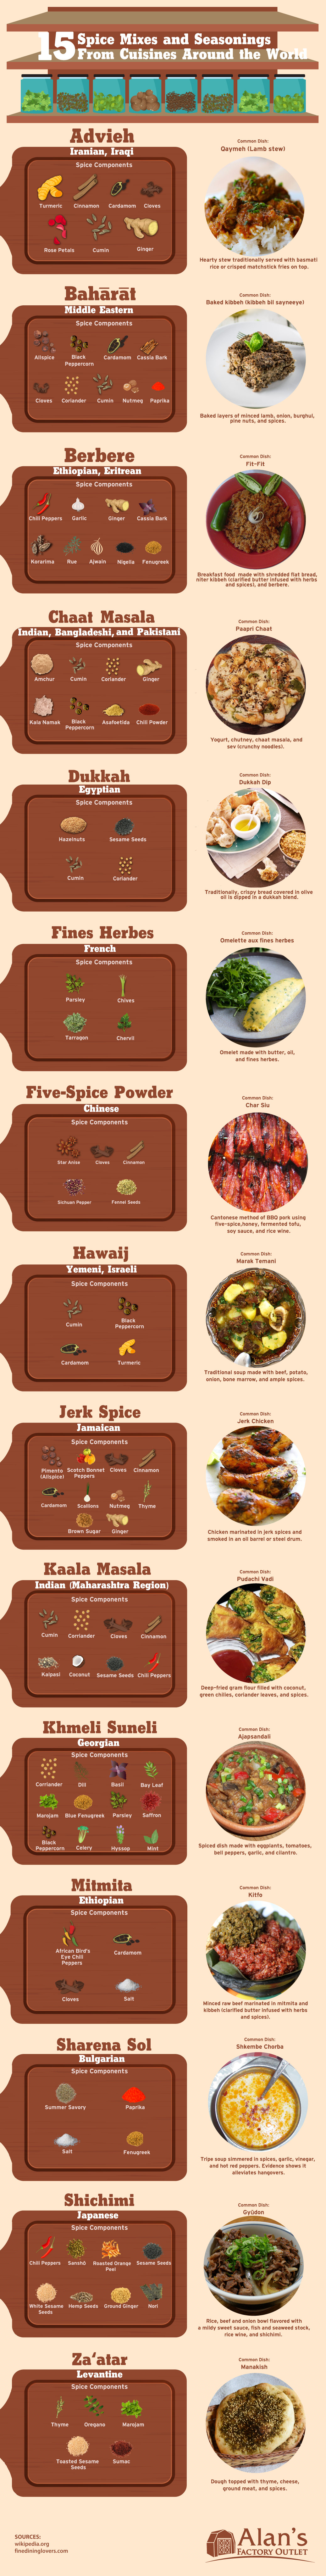 The Global Spice Chest- 15 Ethnic Spice Mixes and Seasonings - Infographic